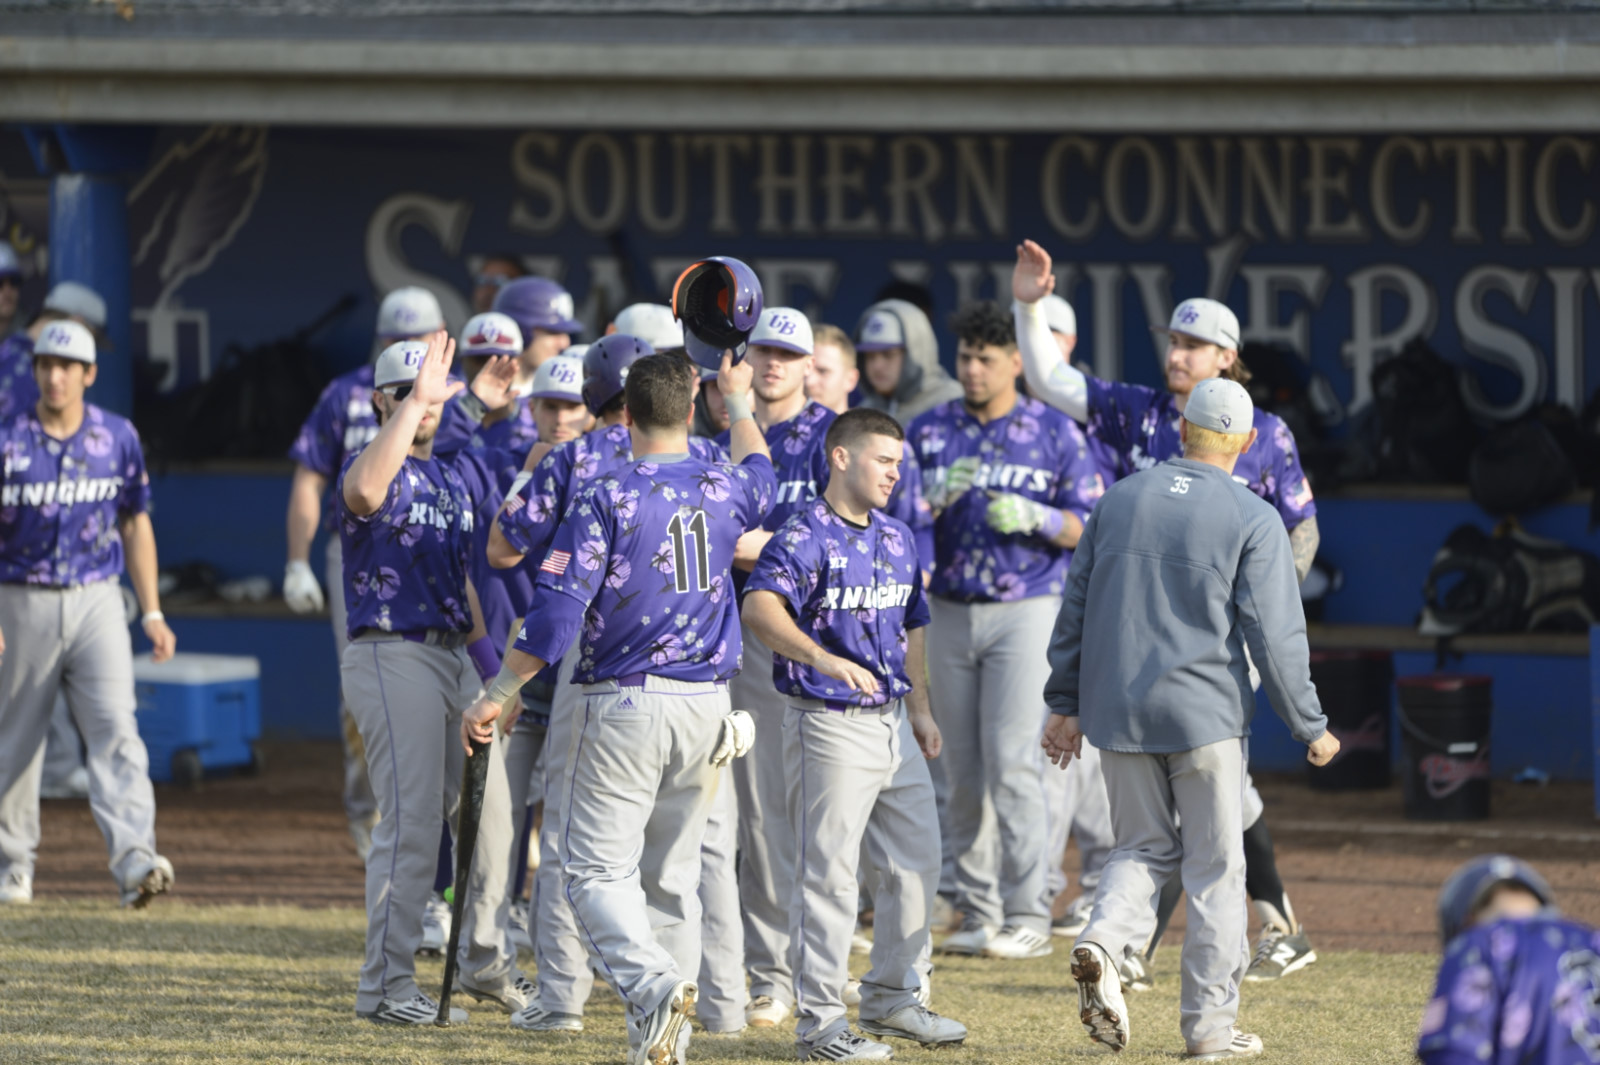 UB Baseball Tames Golden Lions, 7-6, To Stay Alive In NCAA Baseball East Regional